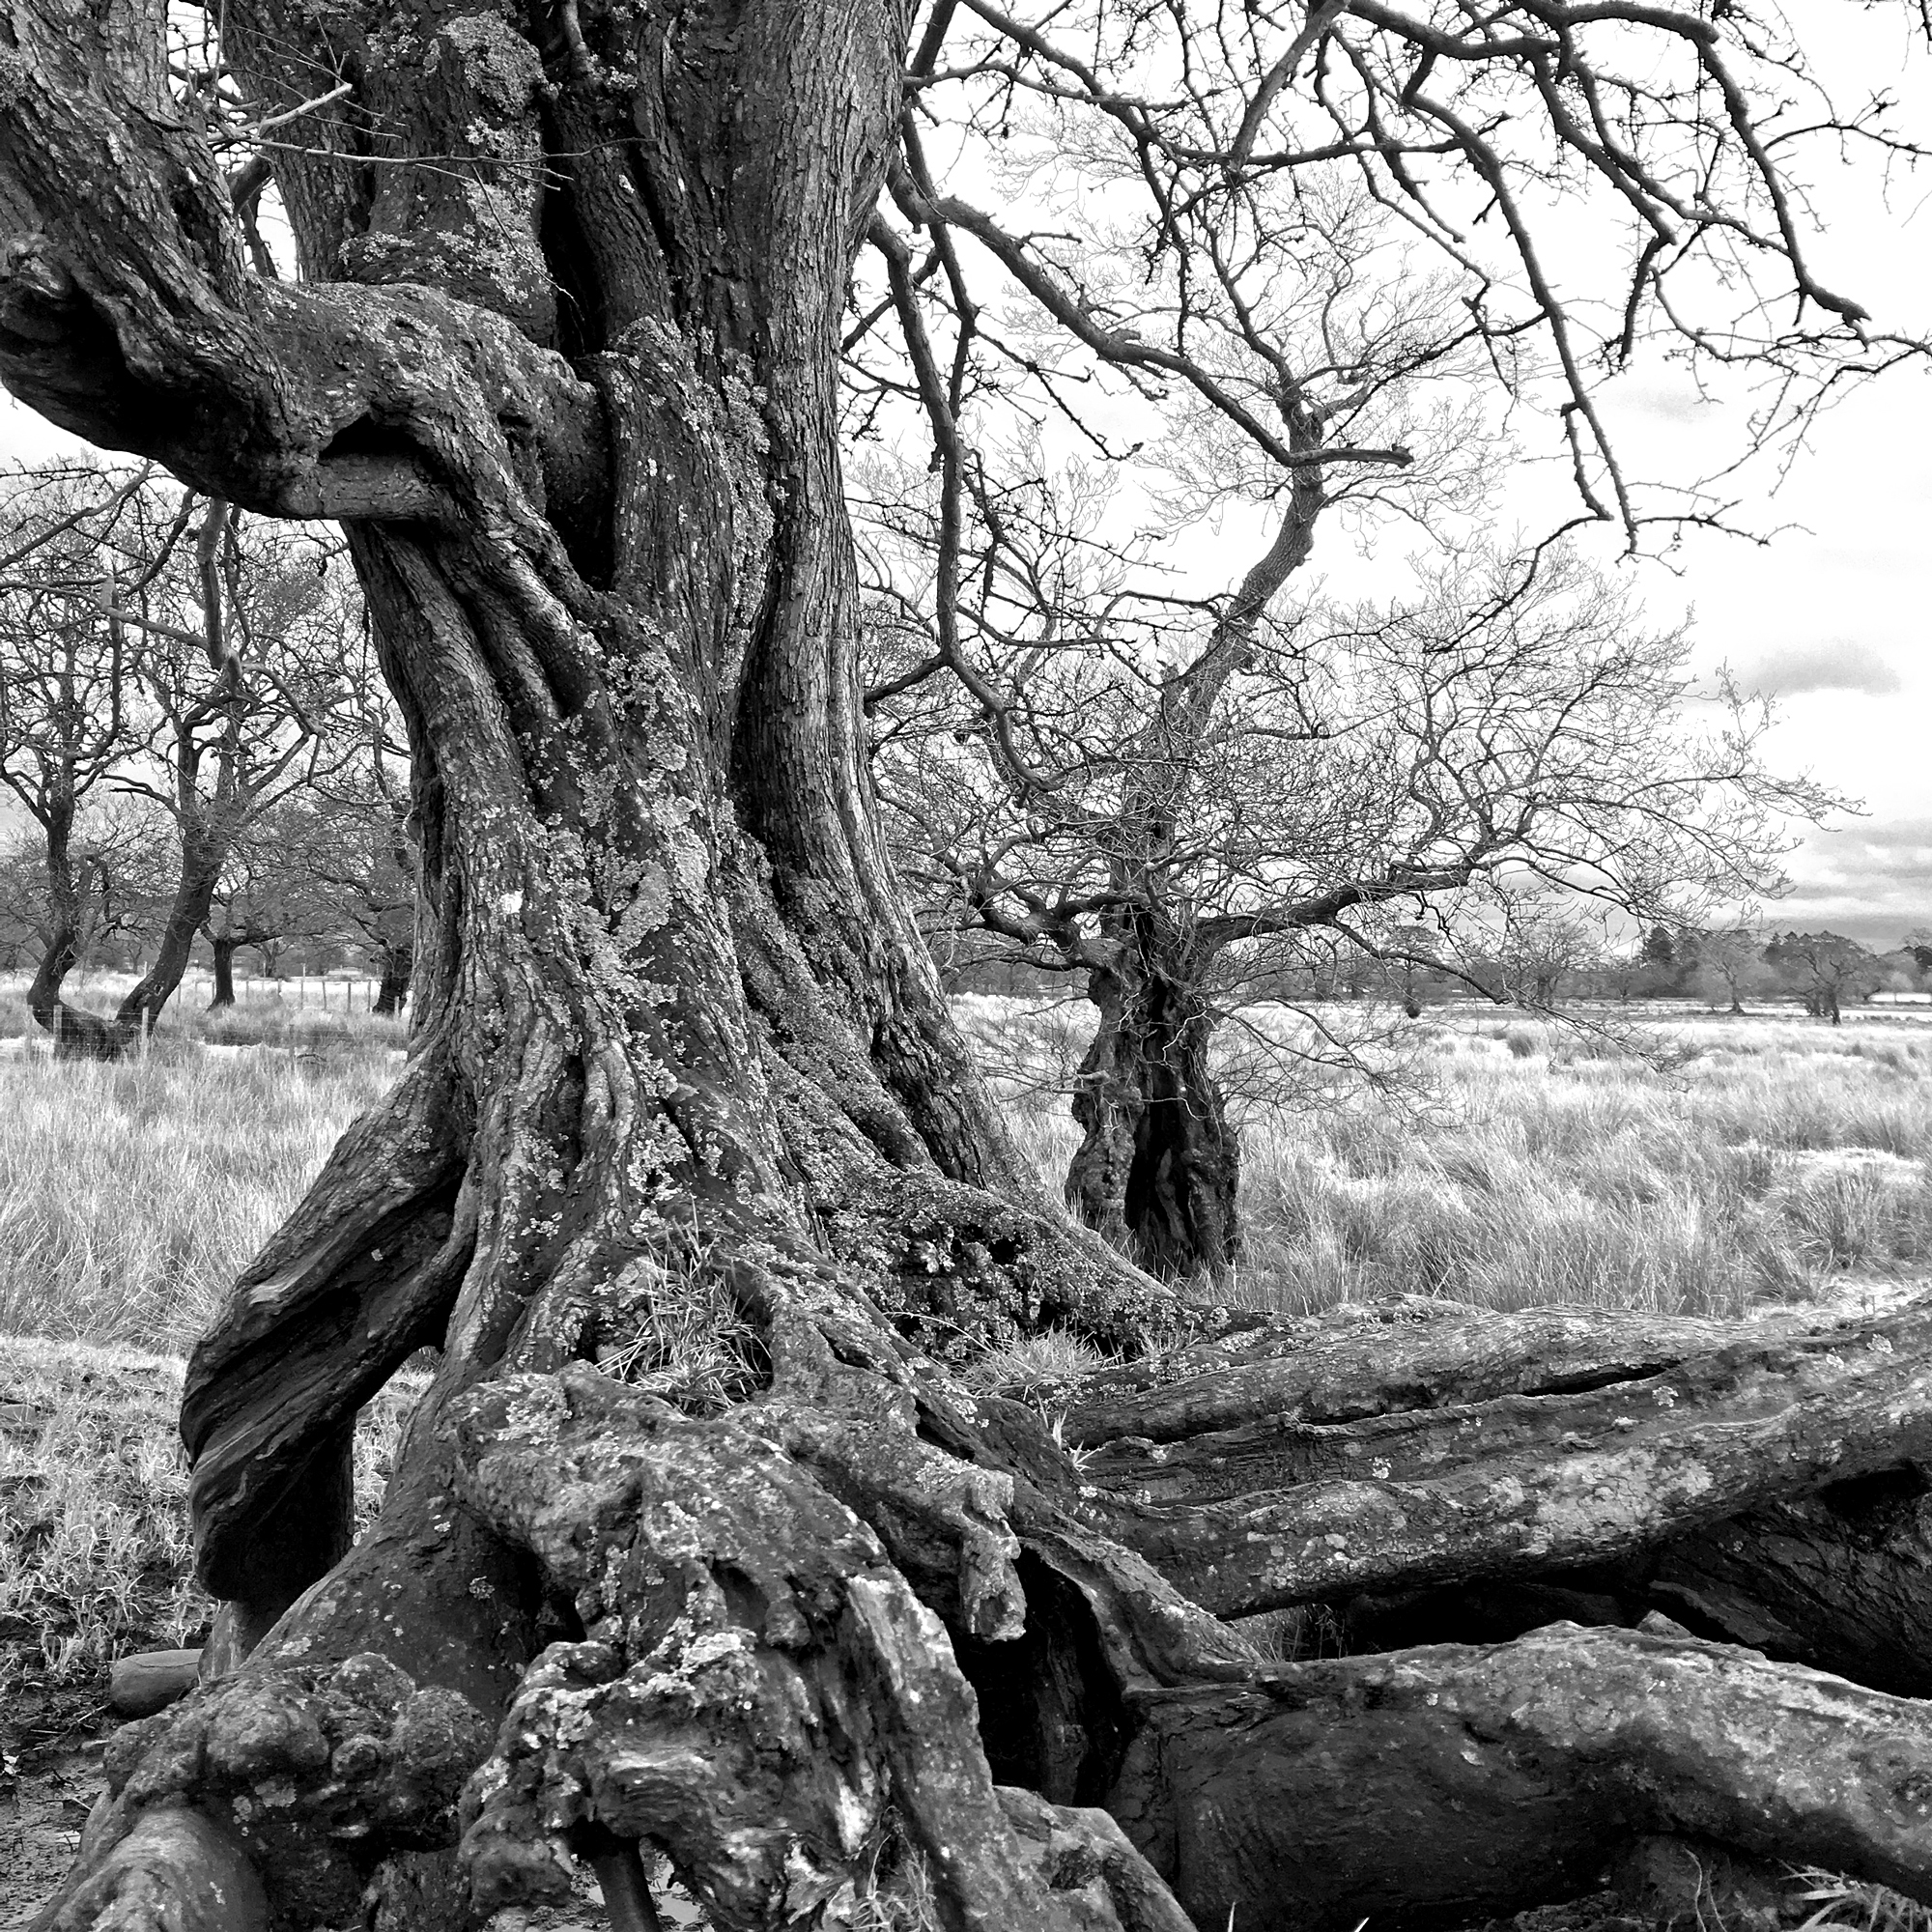 Ancient Hawthorn with an Alder in the background, Chipping Moss.